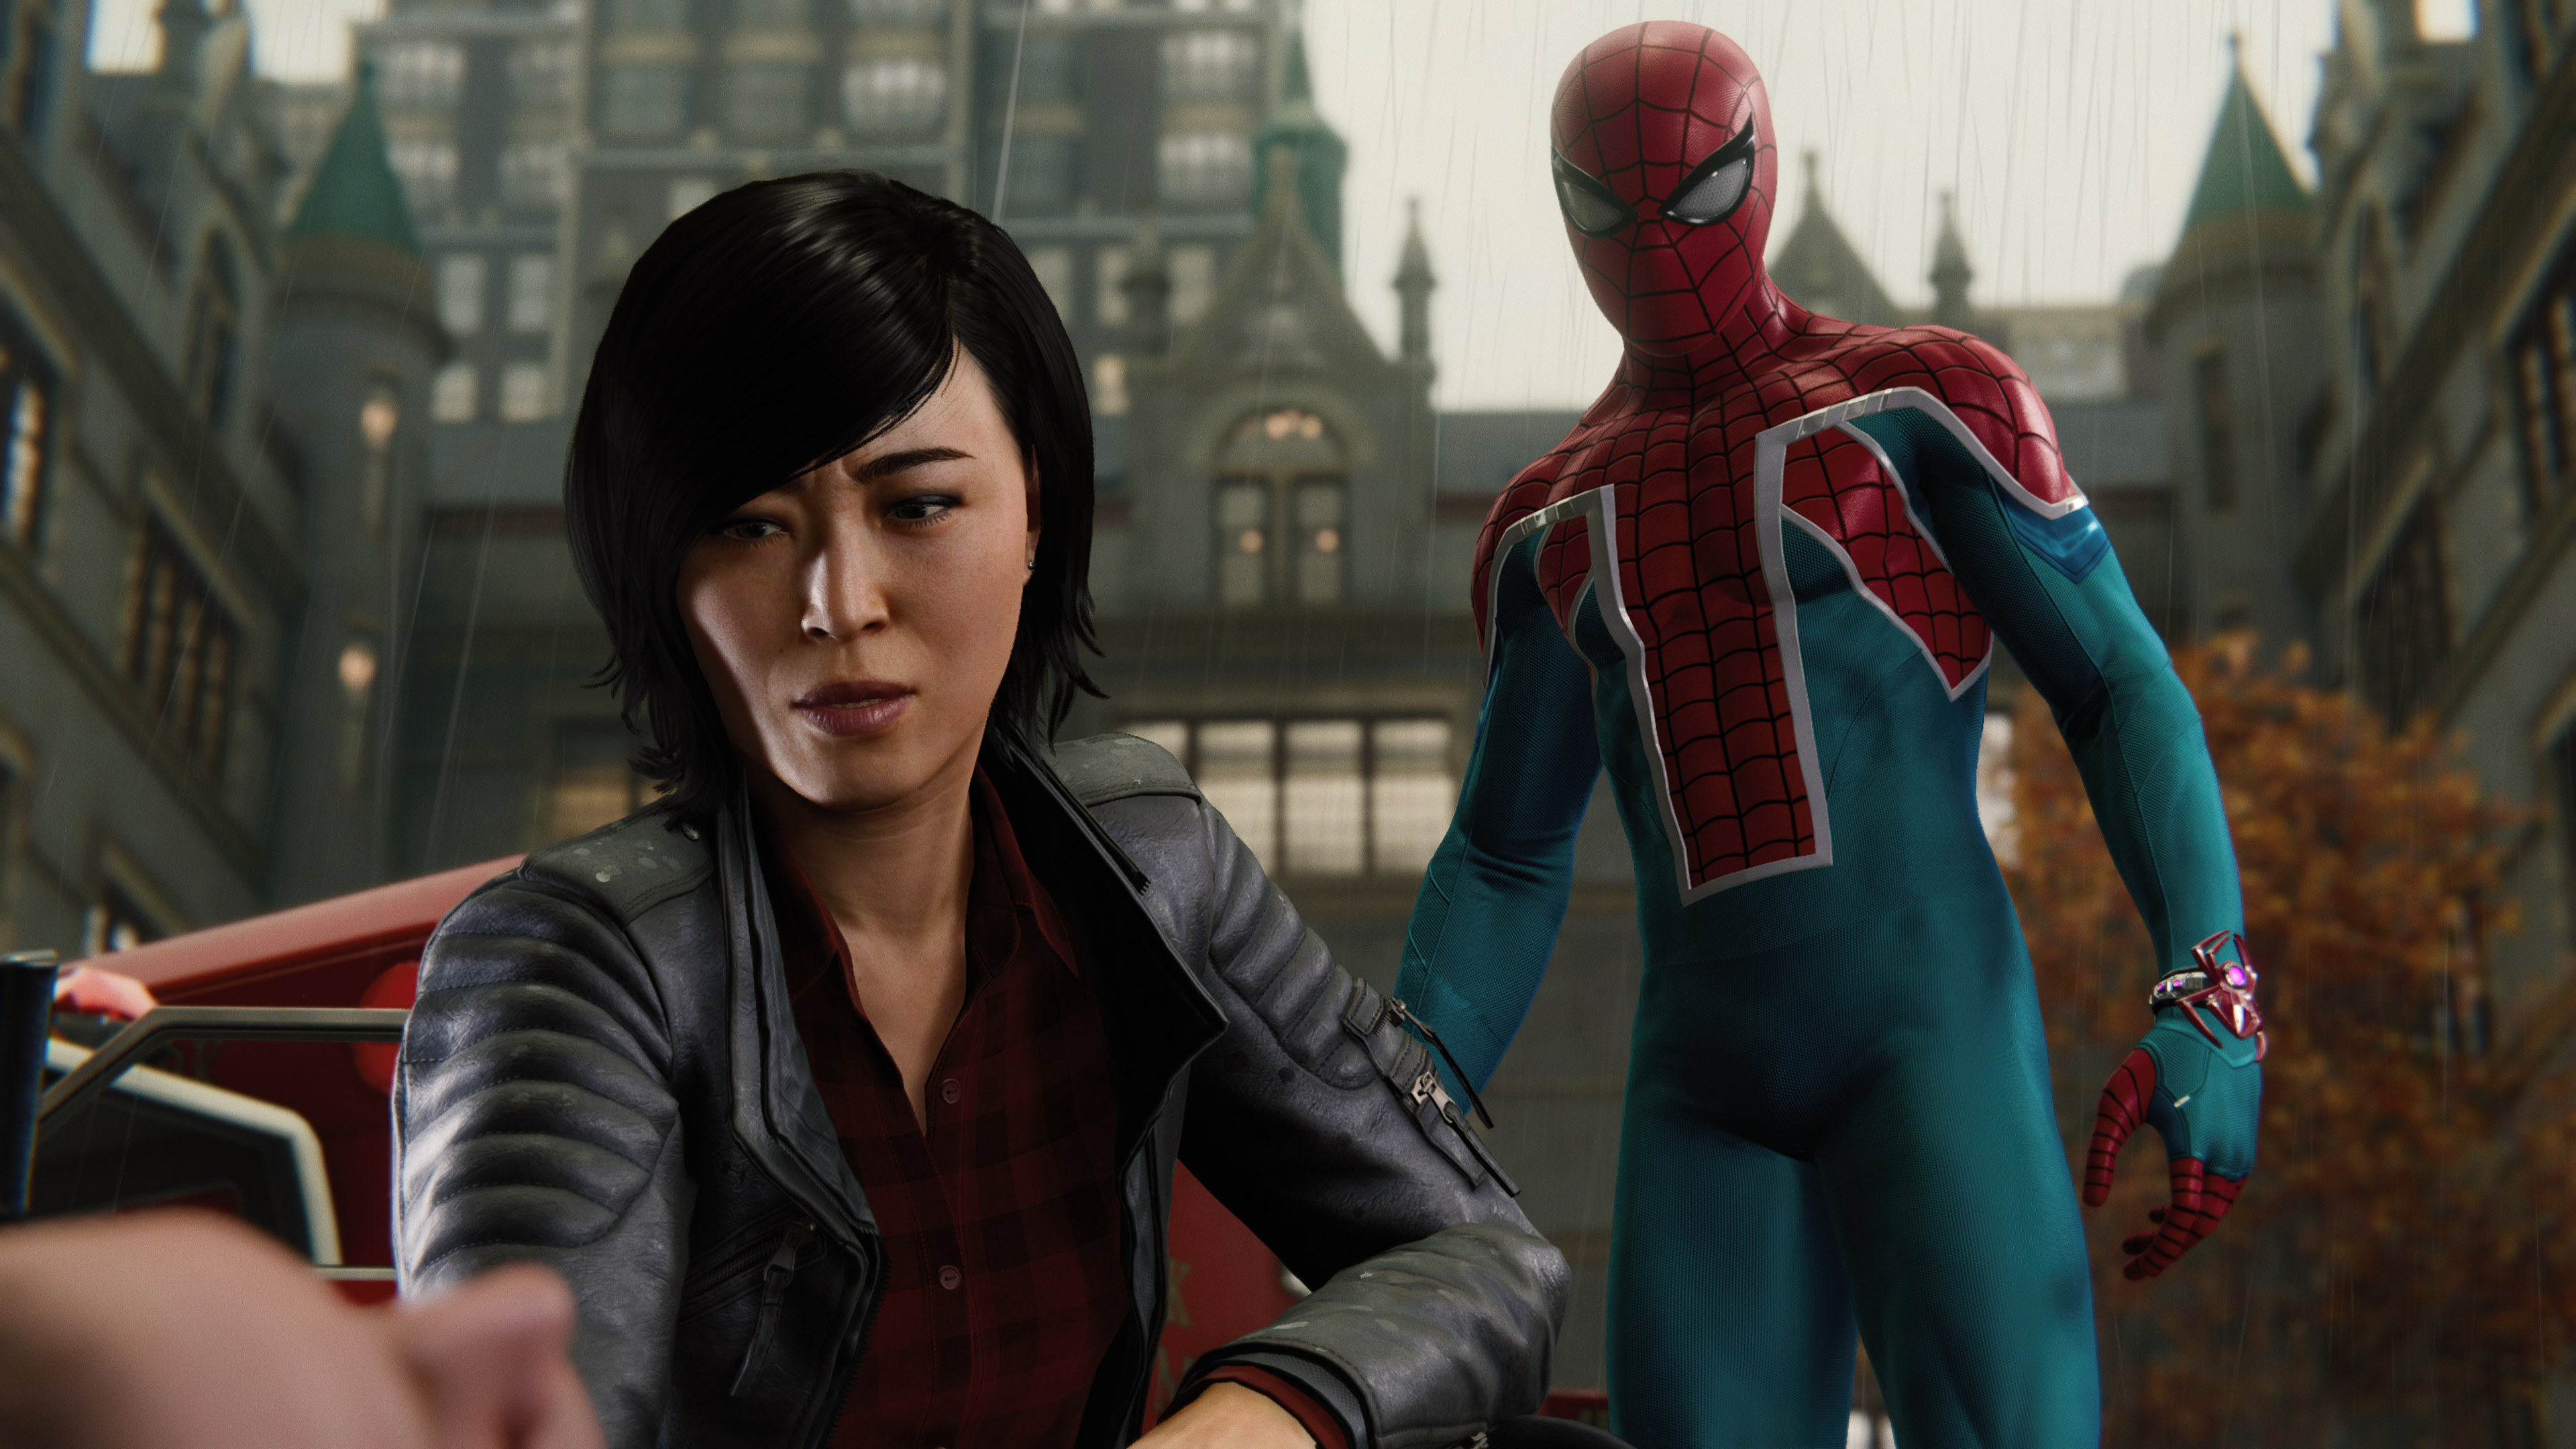 Spider-Man's Latest DLC Sells Its Fascinating Ideas Short